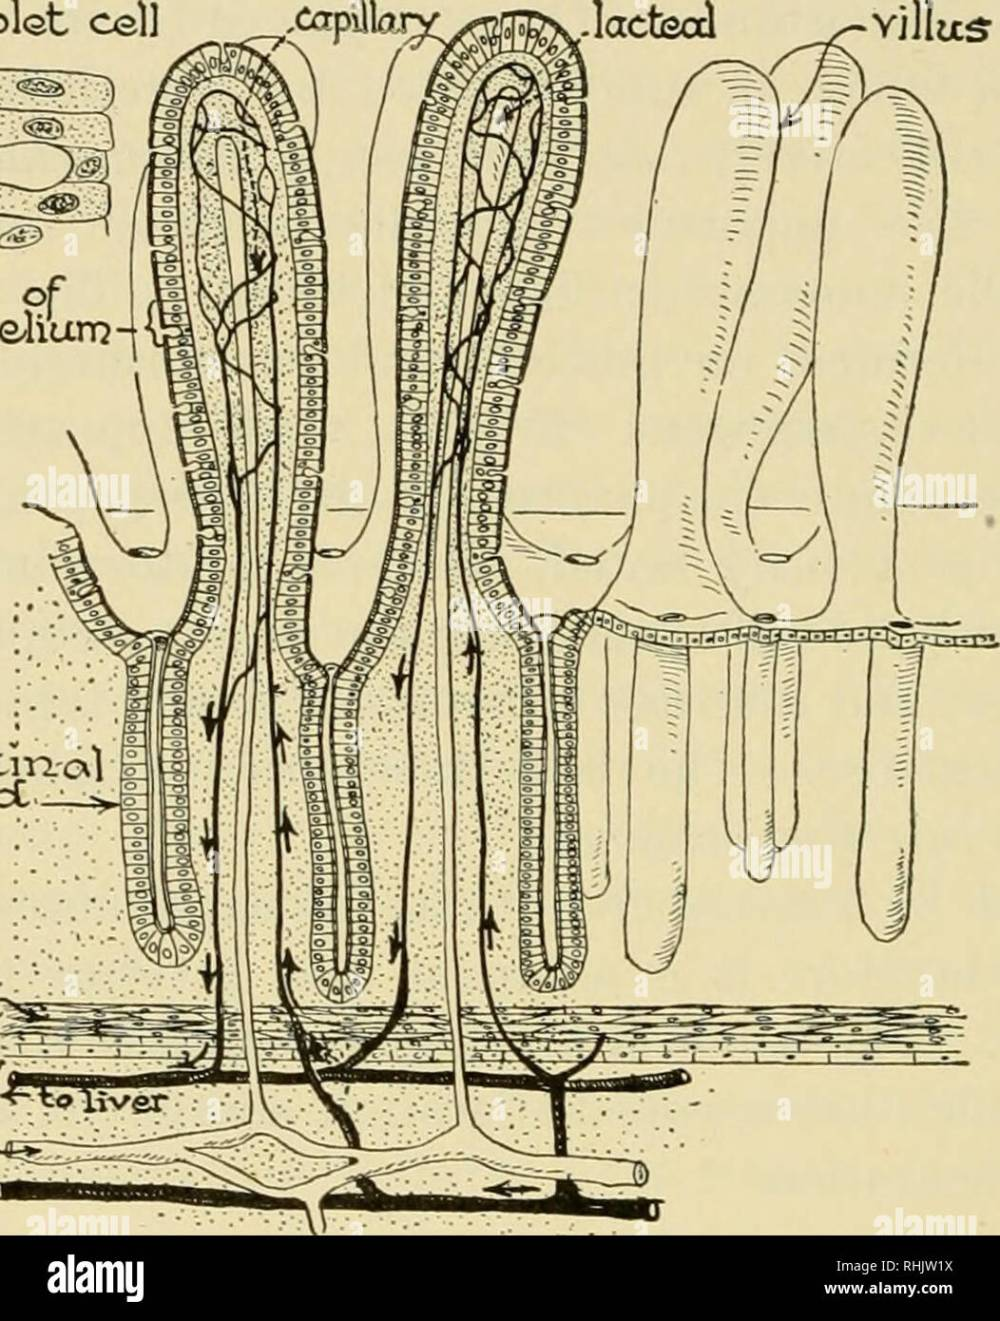 medium resolution of  biology the story of living things cells of epithaliunj intestm al glcxrjcc niuscler vein icccteal arter i diagram of intestinal villi and glands